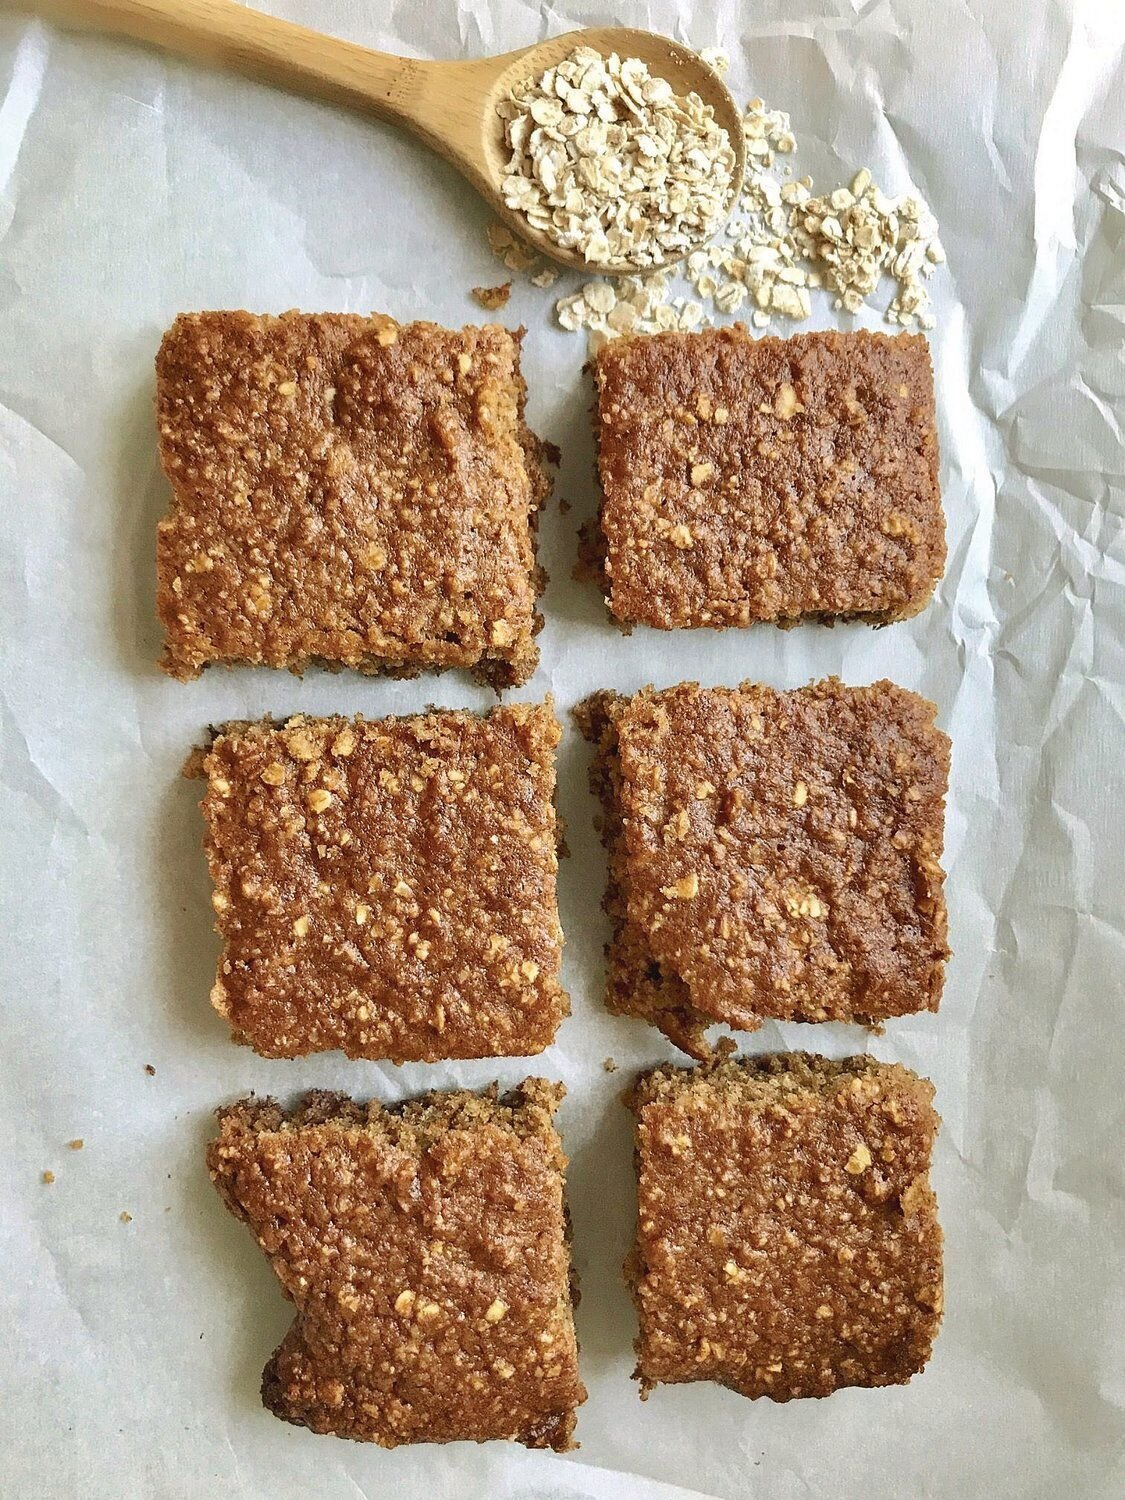 Don't have time for breakfast? Oatmeal bars perfect for busy mornings